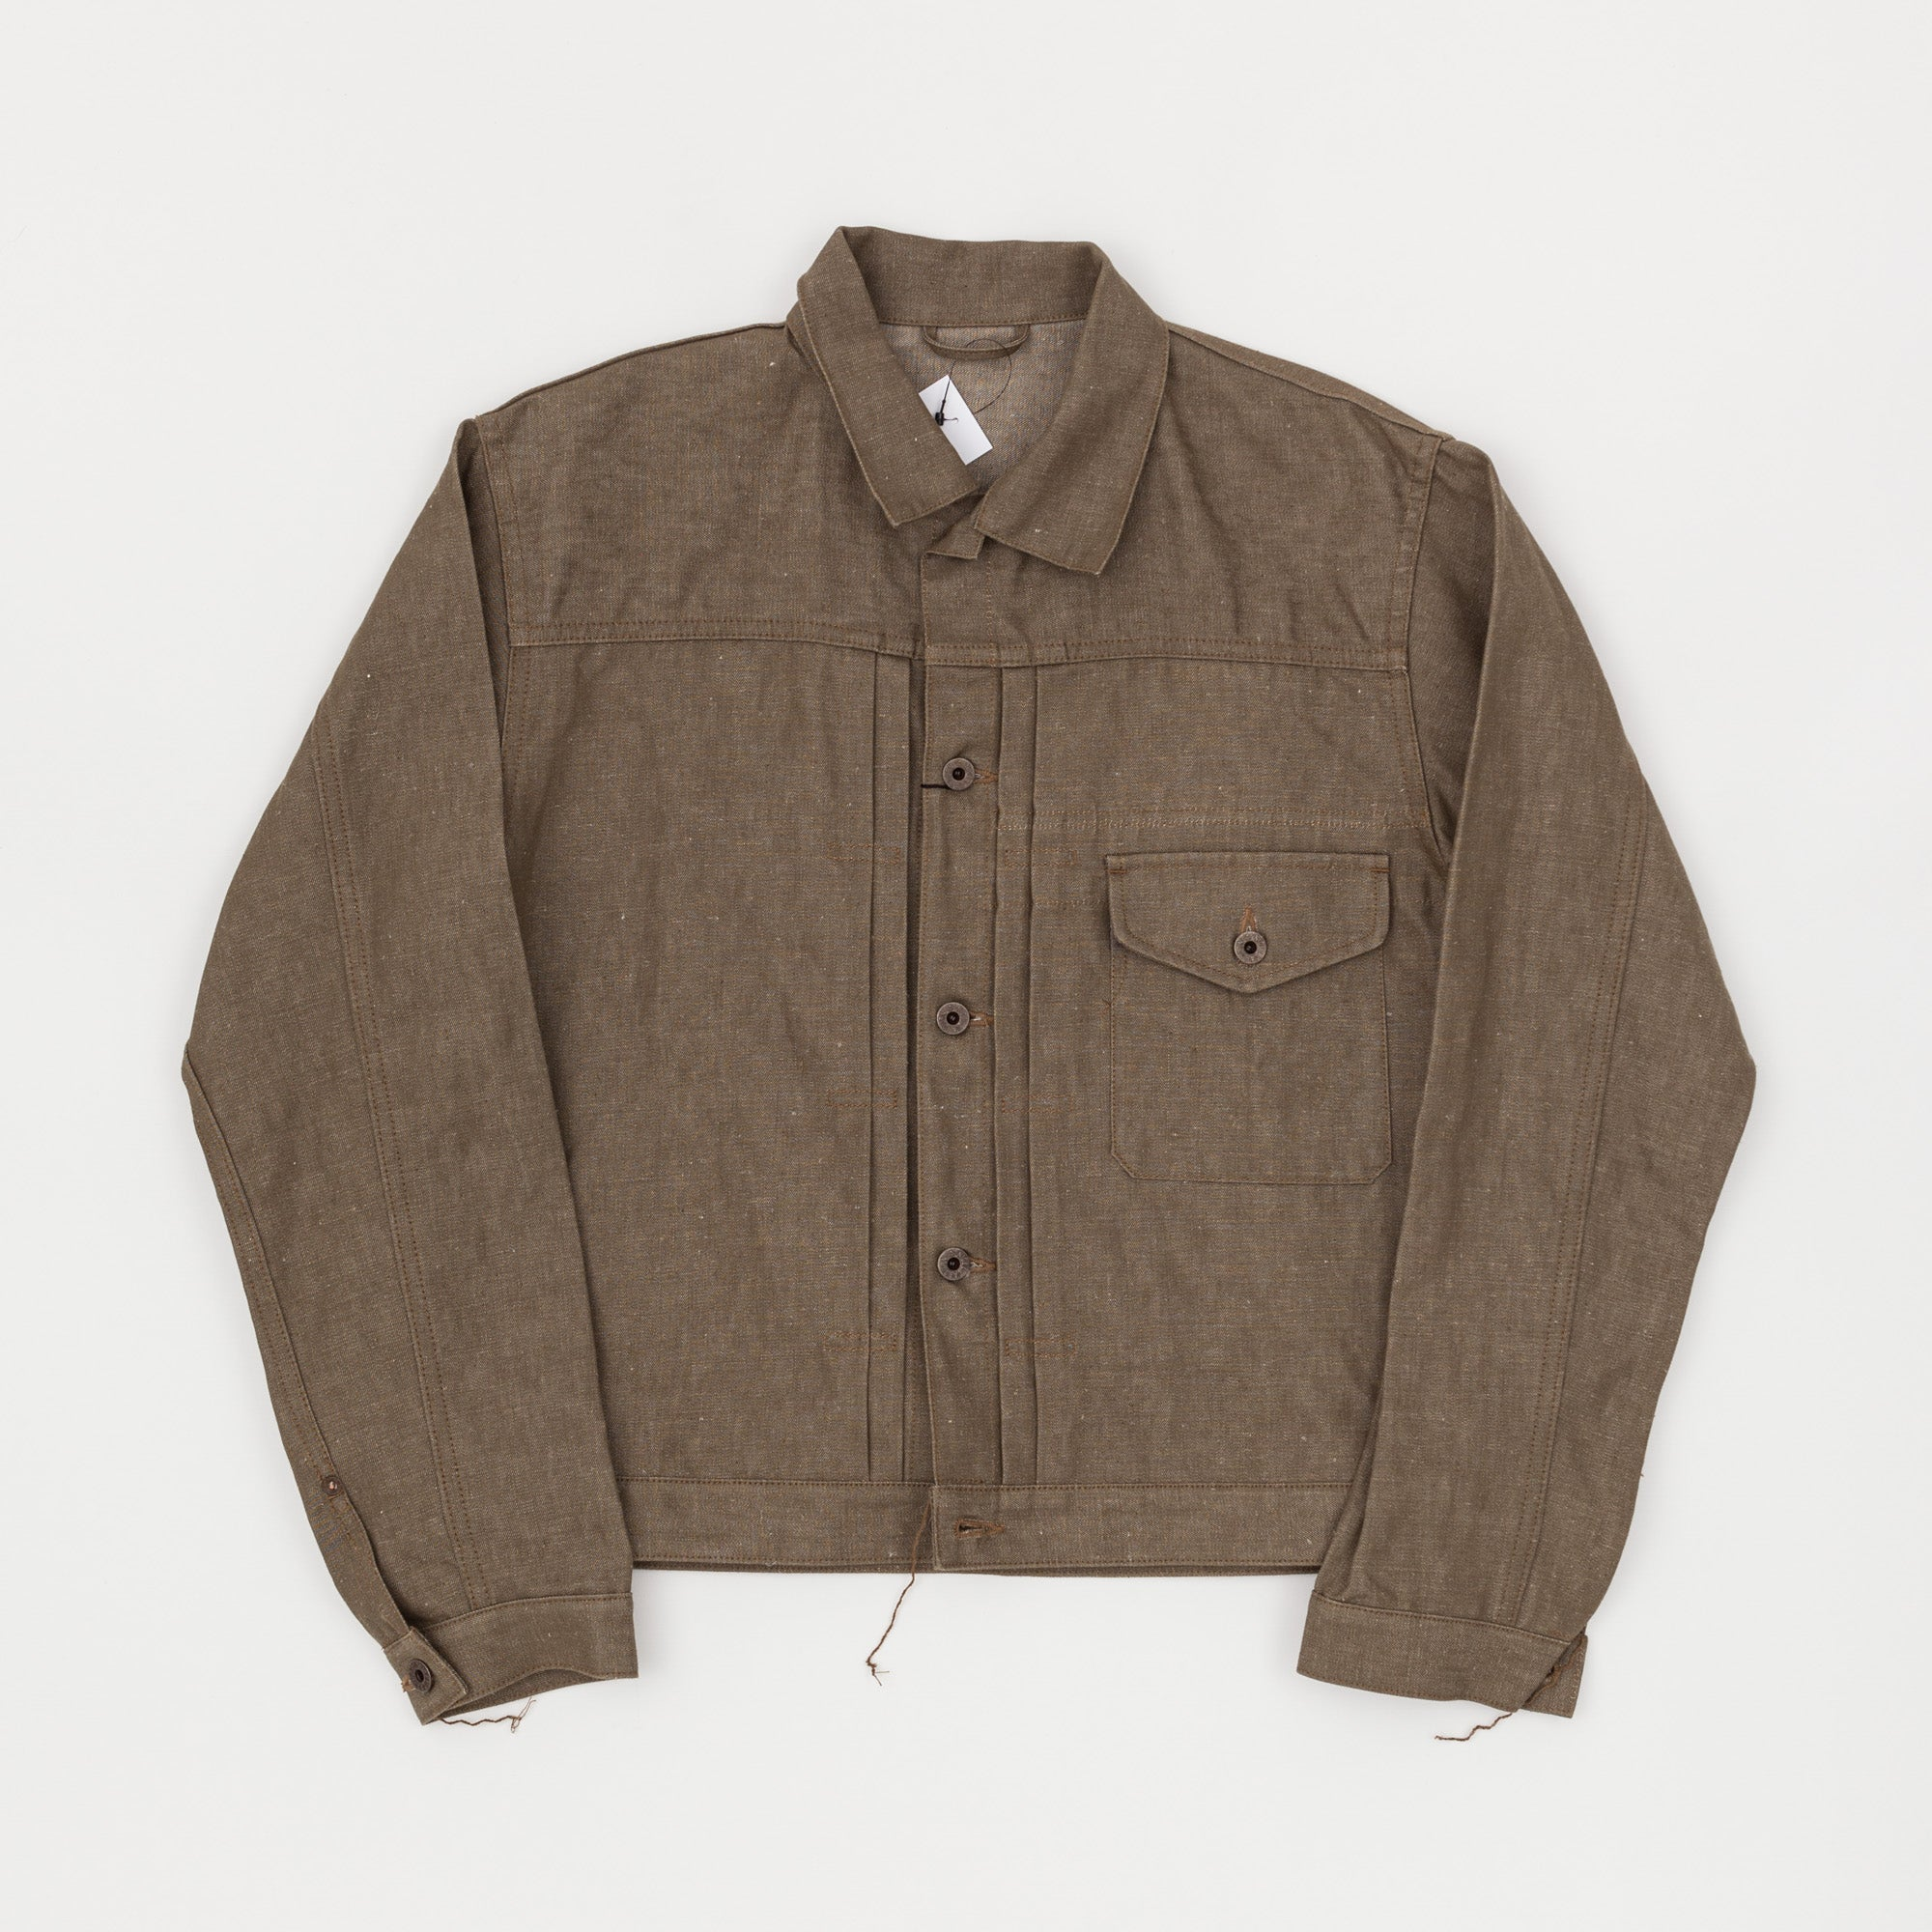 Nigel Cabourn Battle Dress Jacket